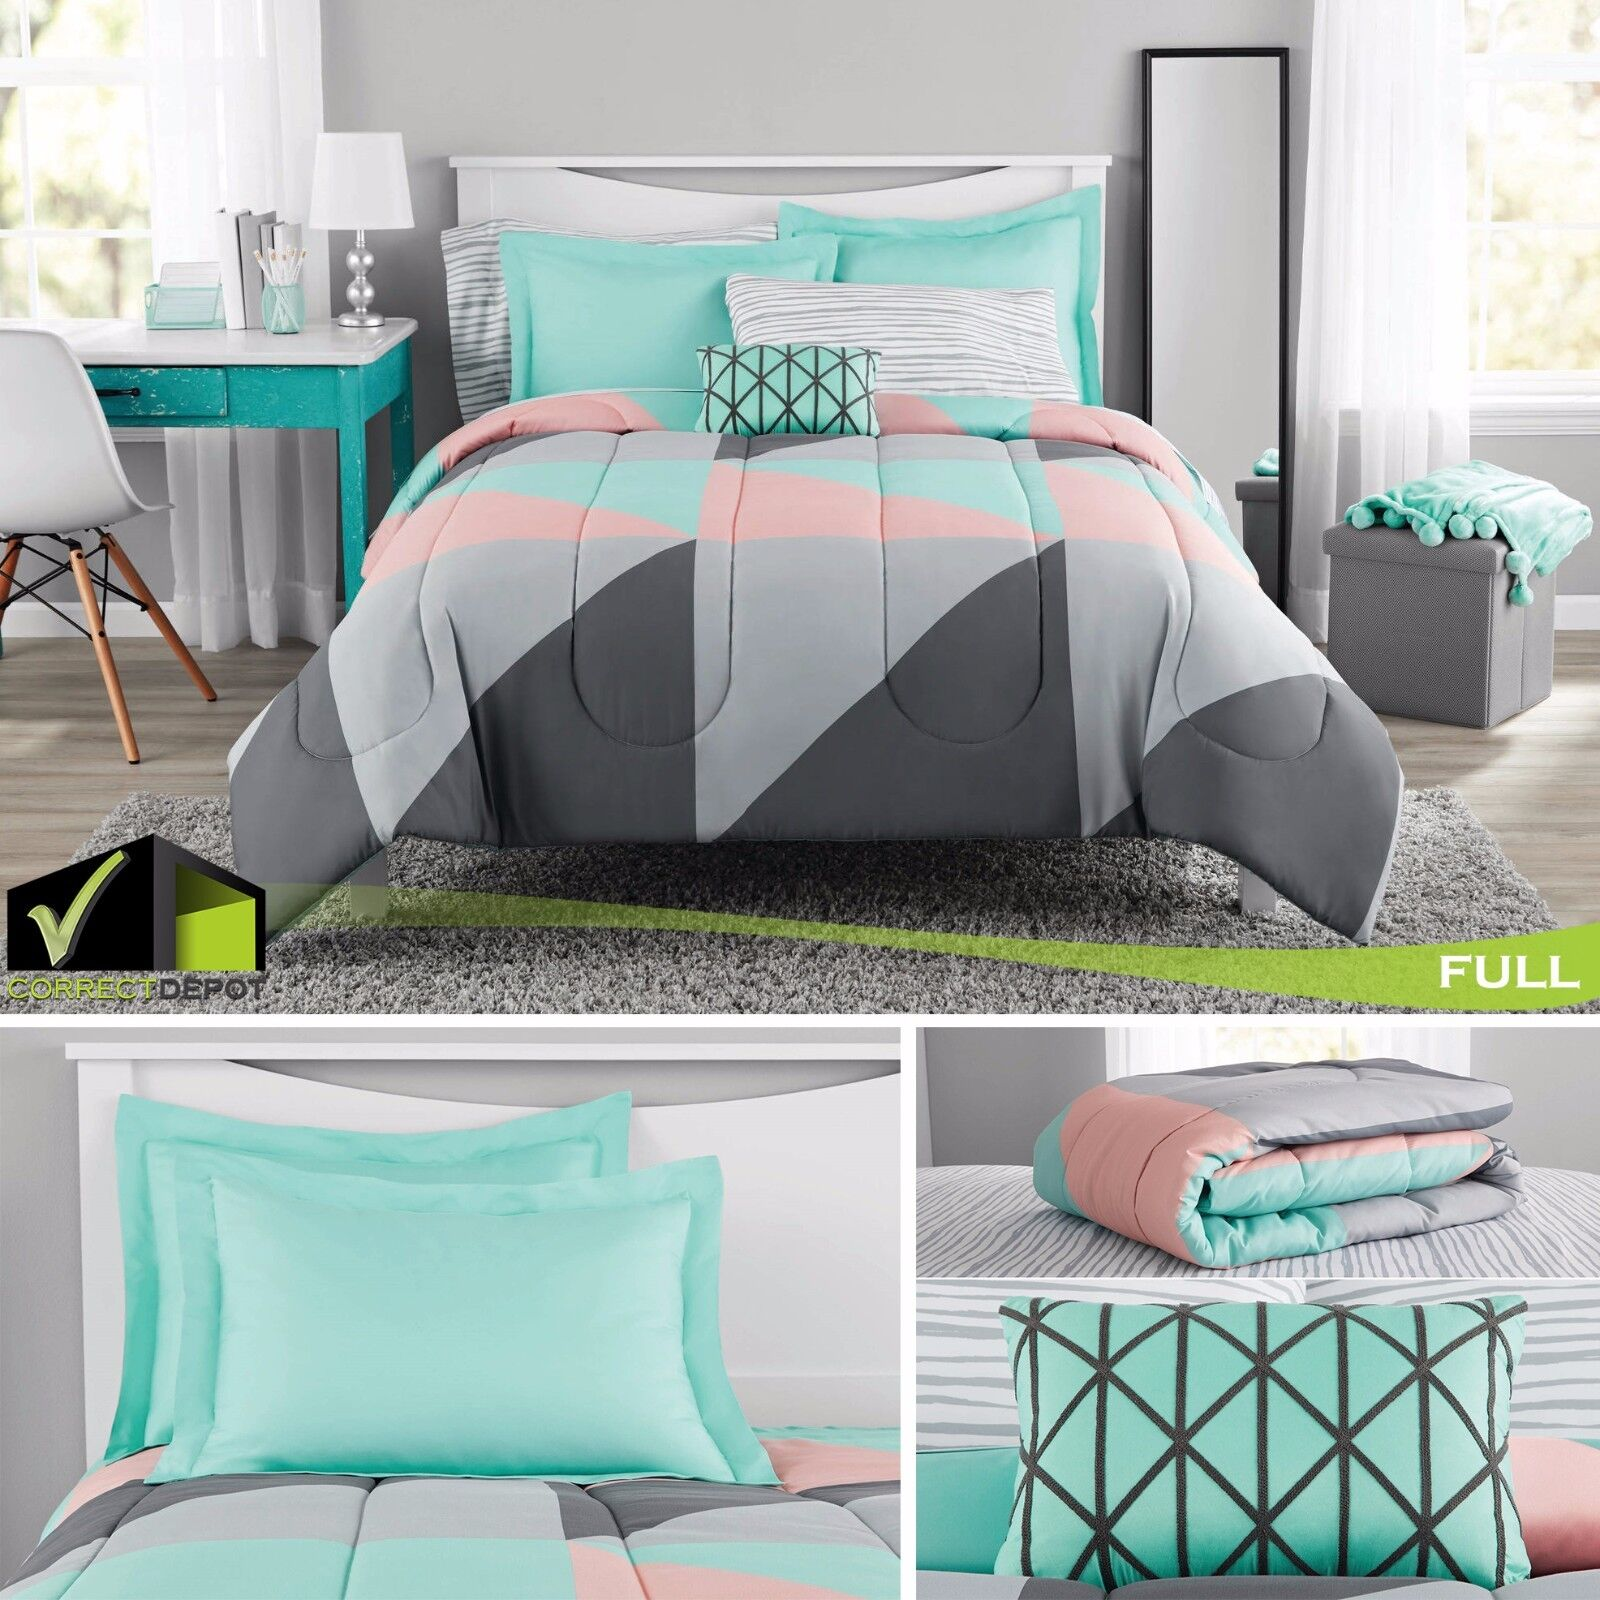 8 Pcs Full Size Bedding Set Gray And Teal Bed In A Bag Comforter Sheets Cases Ebay